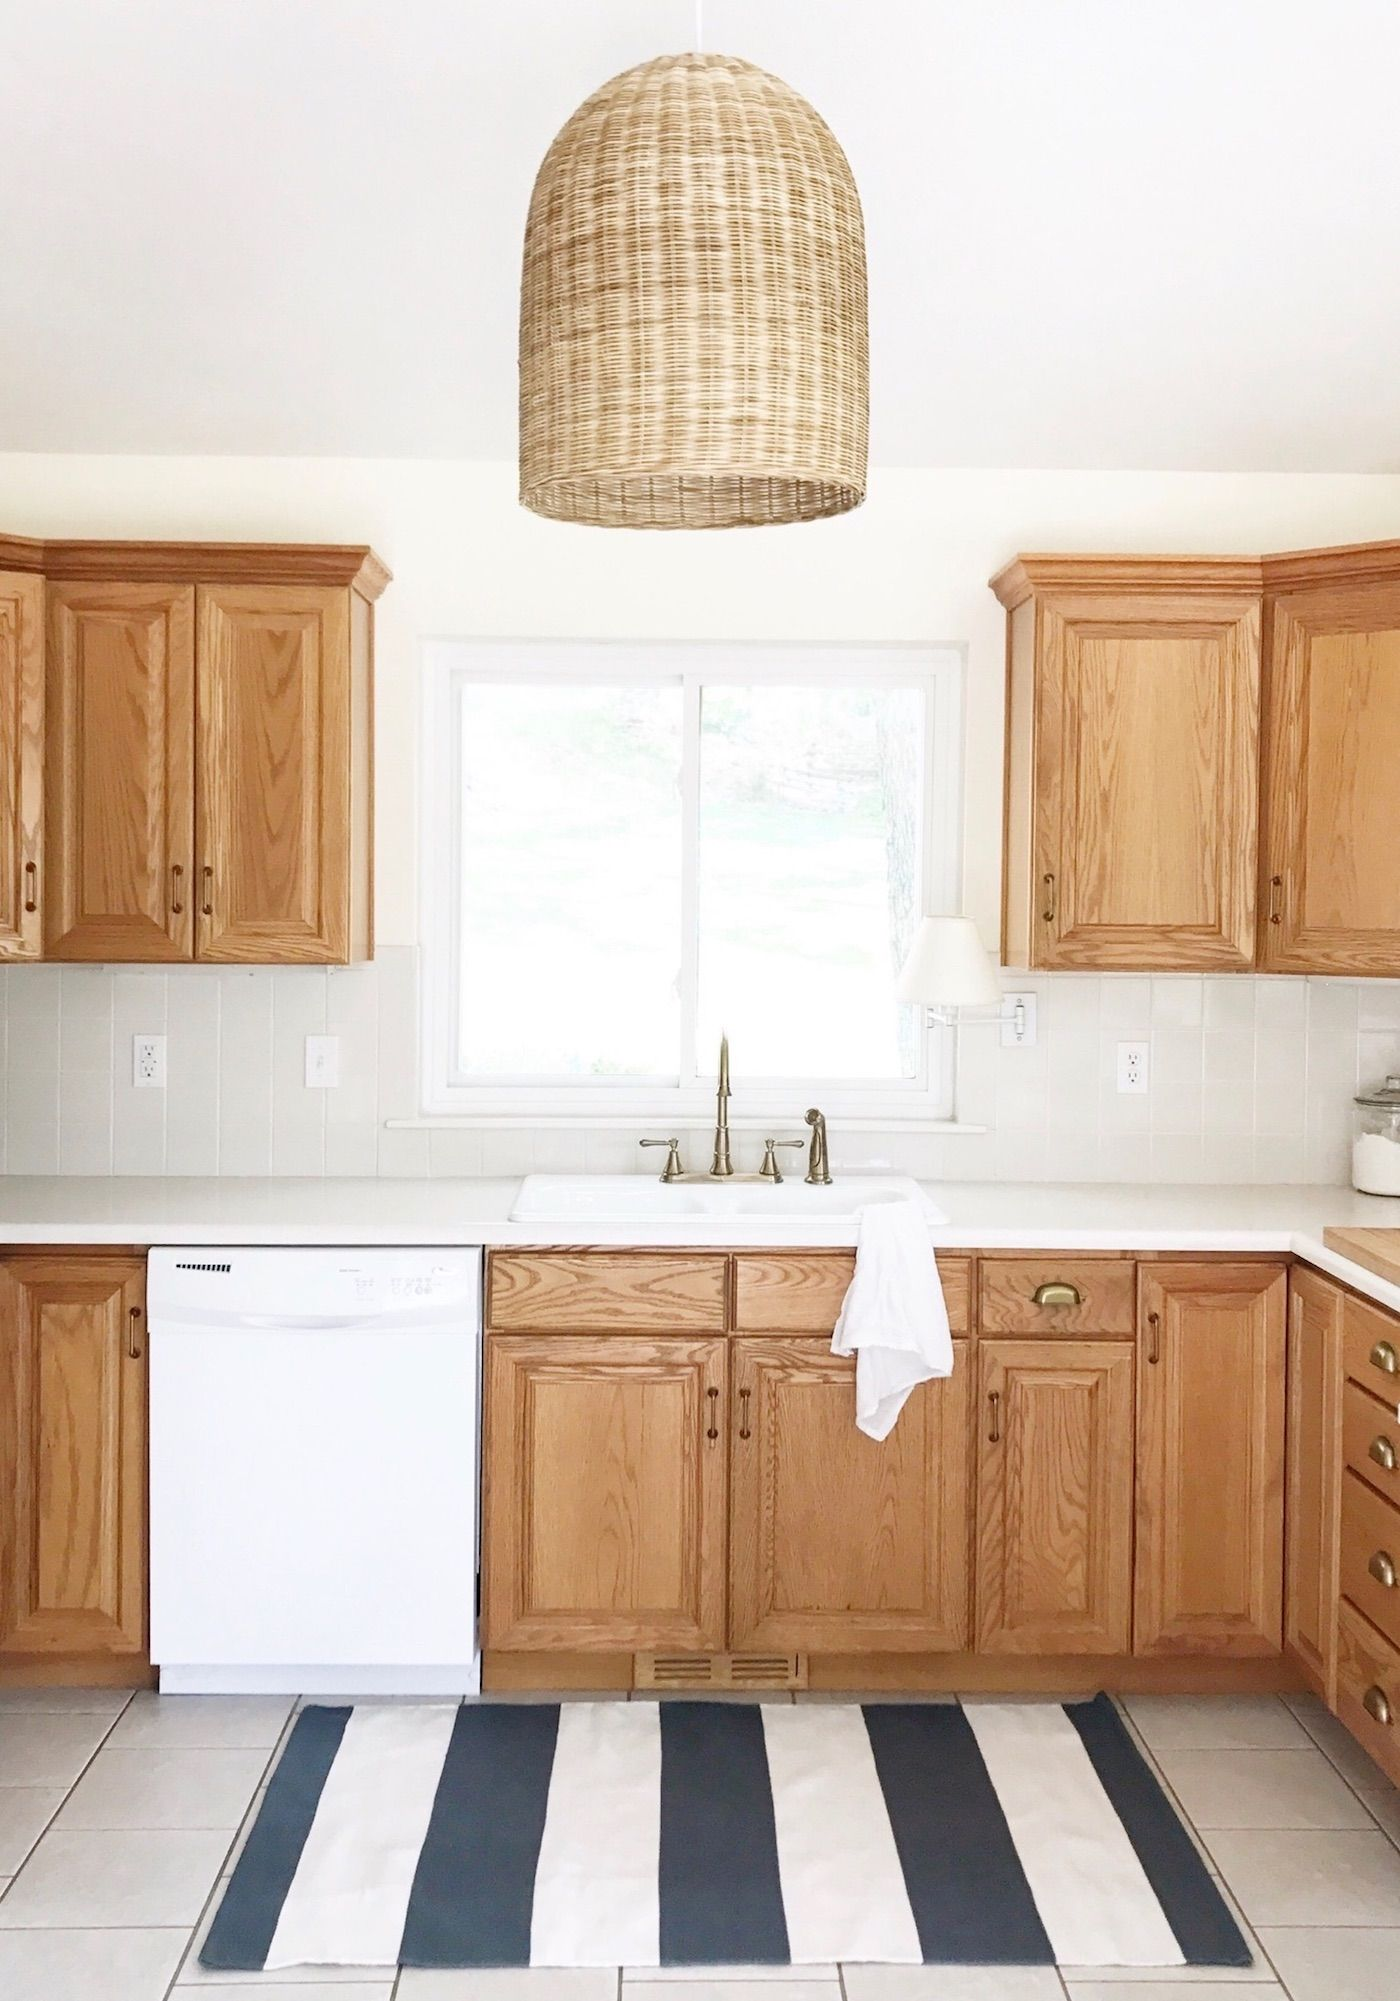 Update Oak Cabinets Without Painting Them Kitchen Diy Cabinets